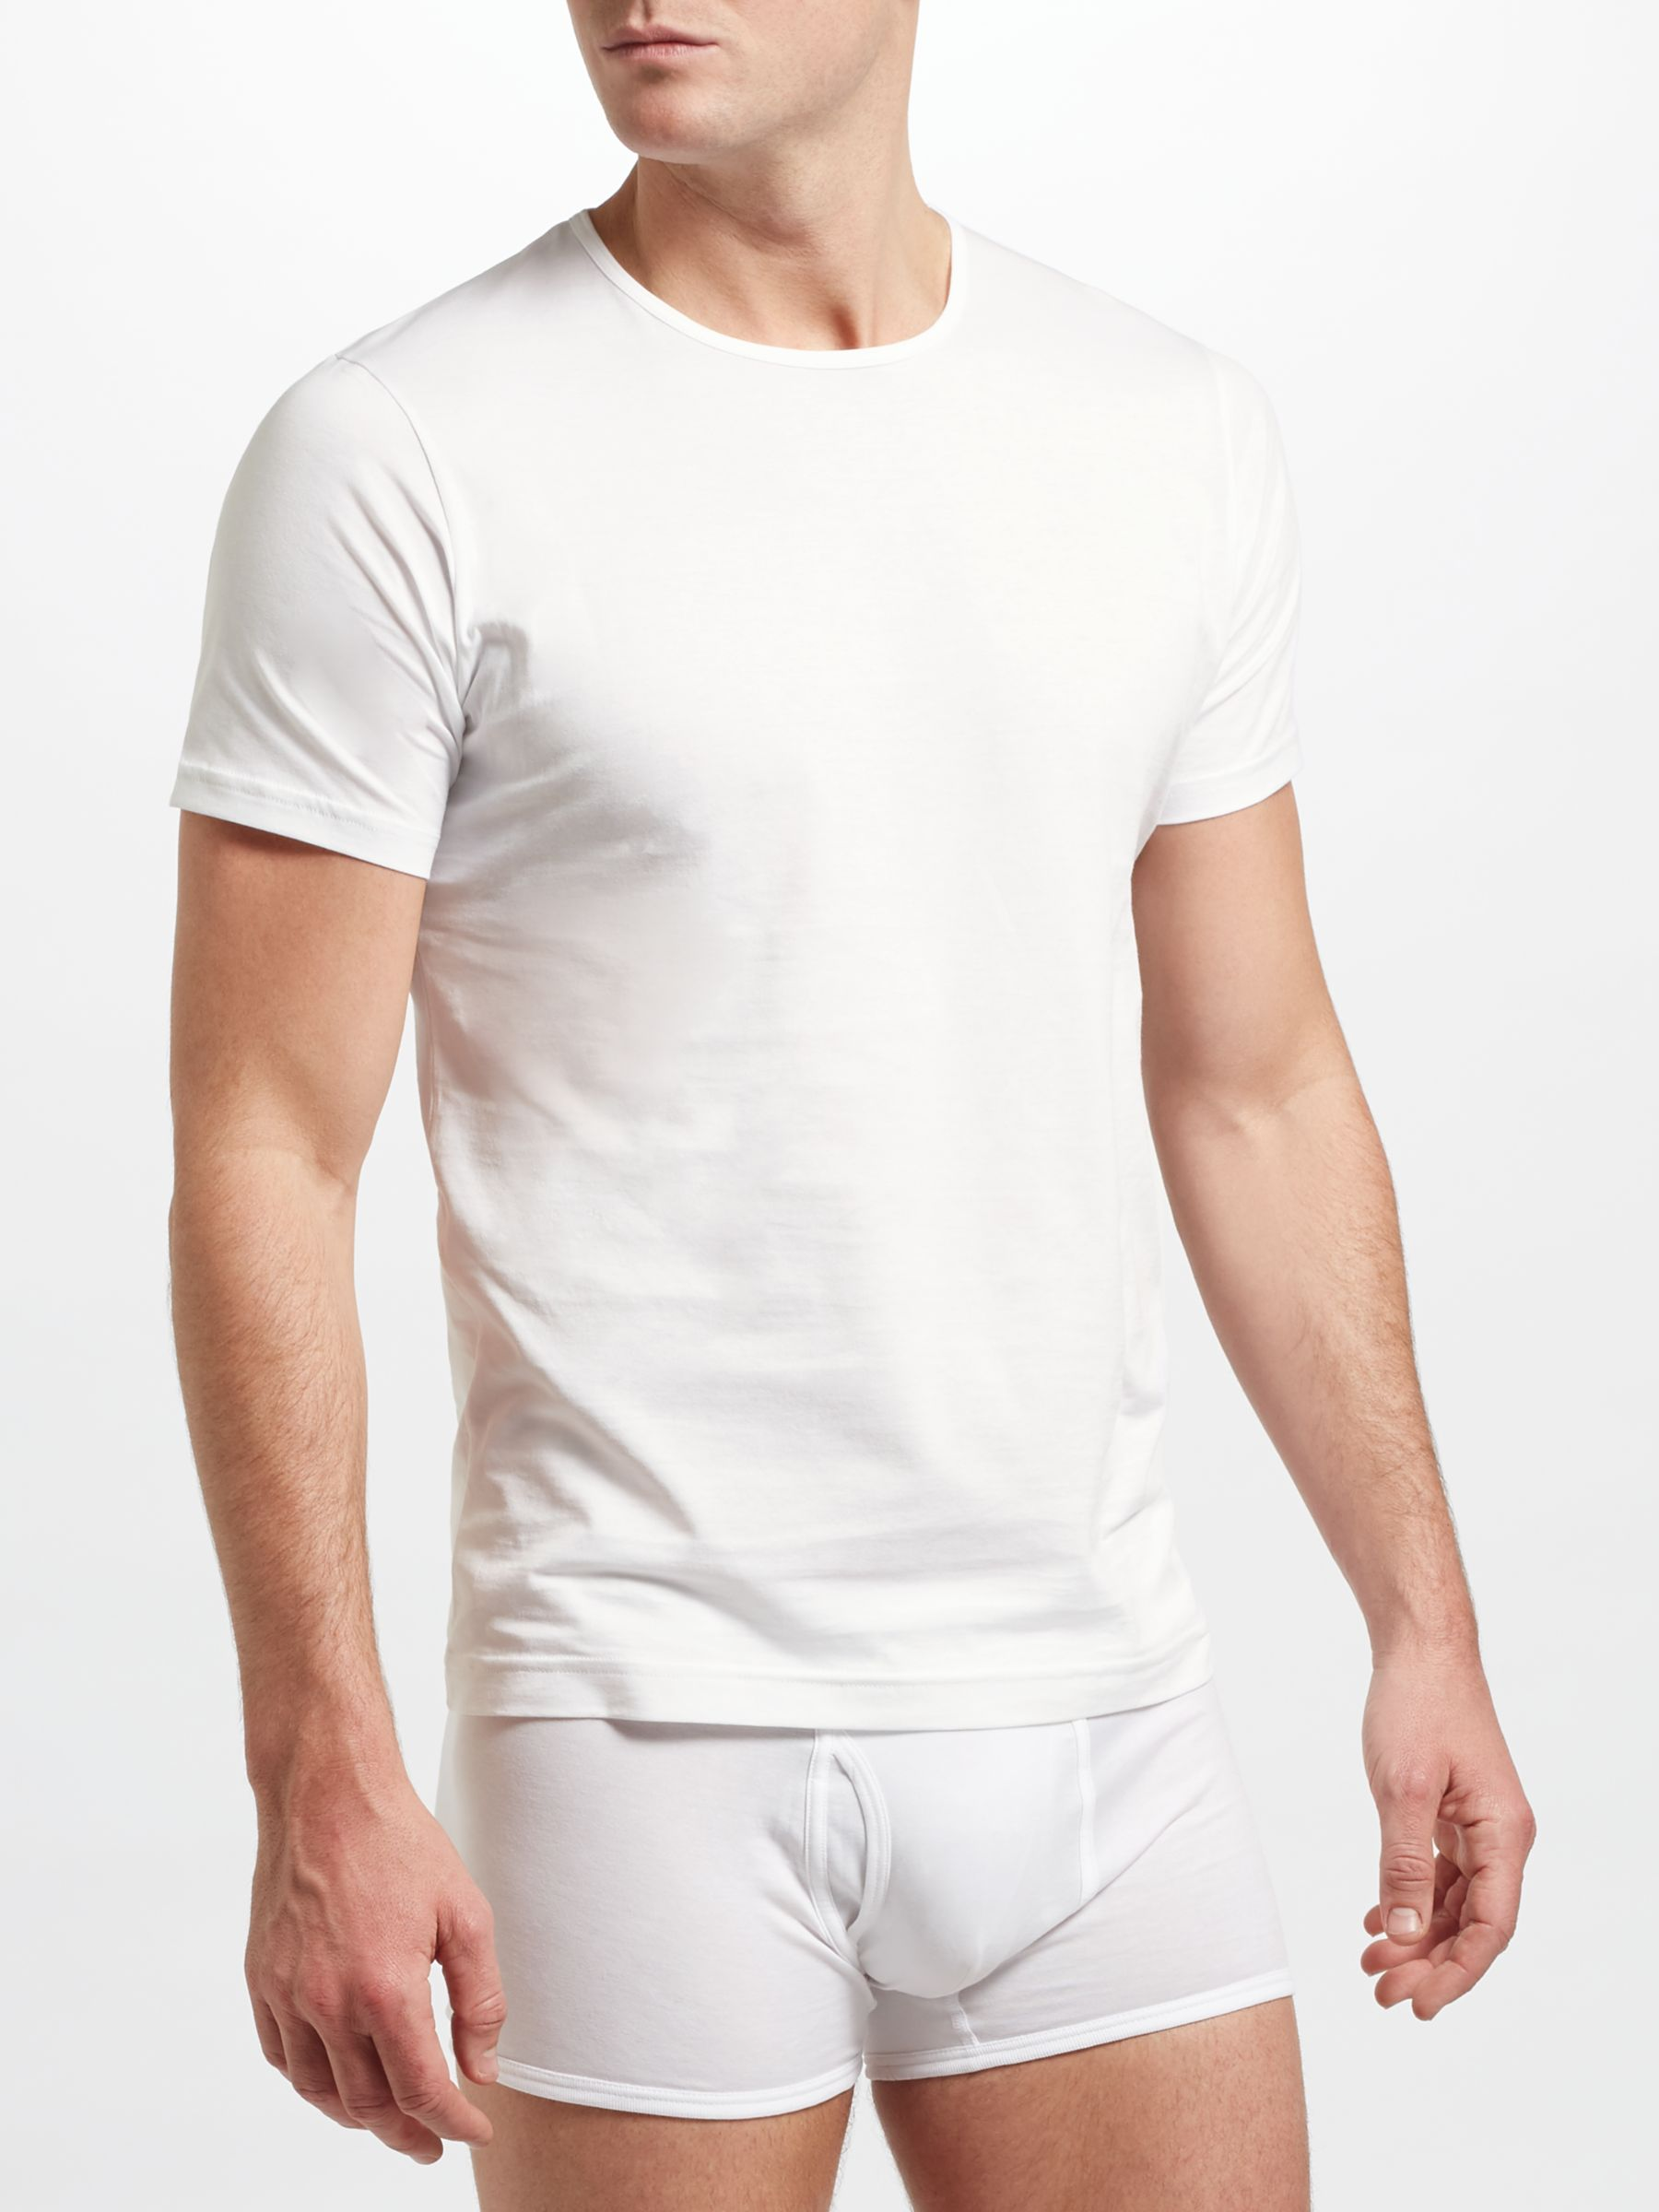 Sunspel Sunspel Short Sleeve Underwear Crew Neck T-Shirt, White